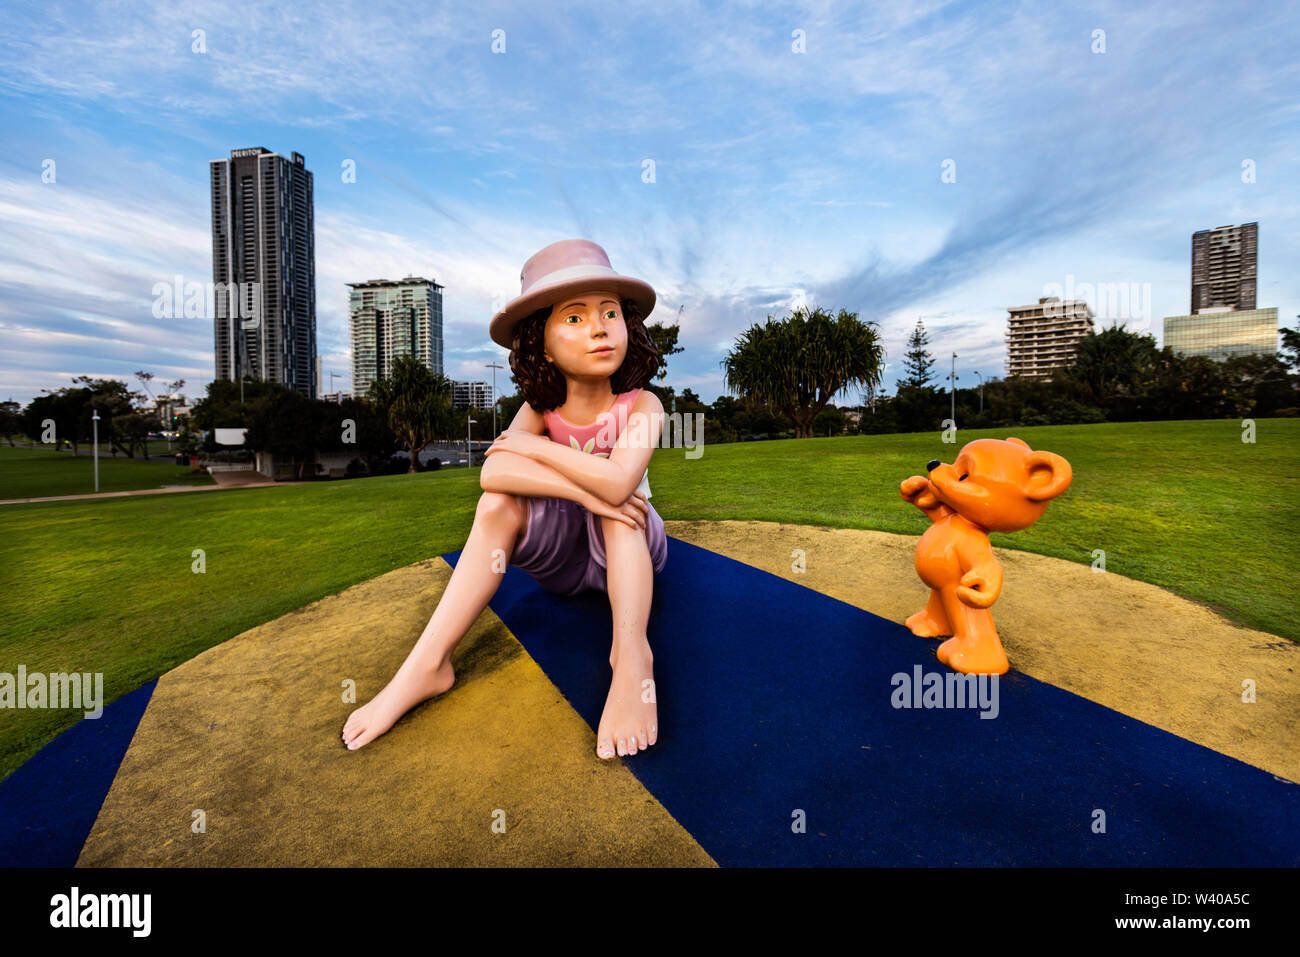 A statue of a young girl, Maddie, and her teddy bear, Mike, sits watch over the Nerang River, Surfers Paradise, Queensland. - Stock Image